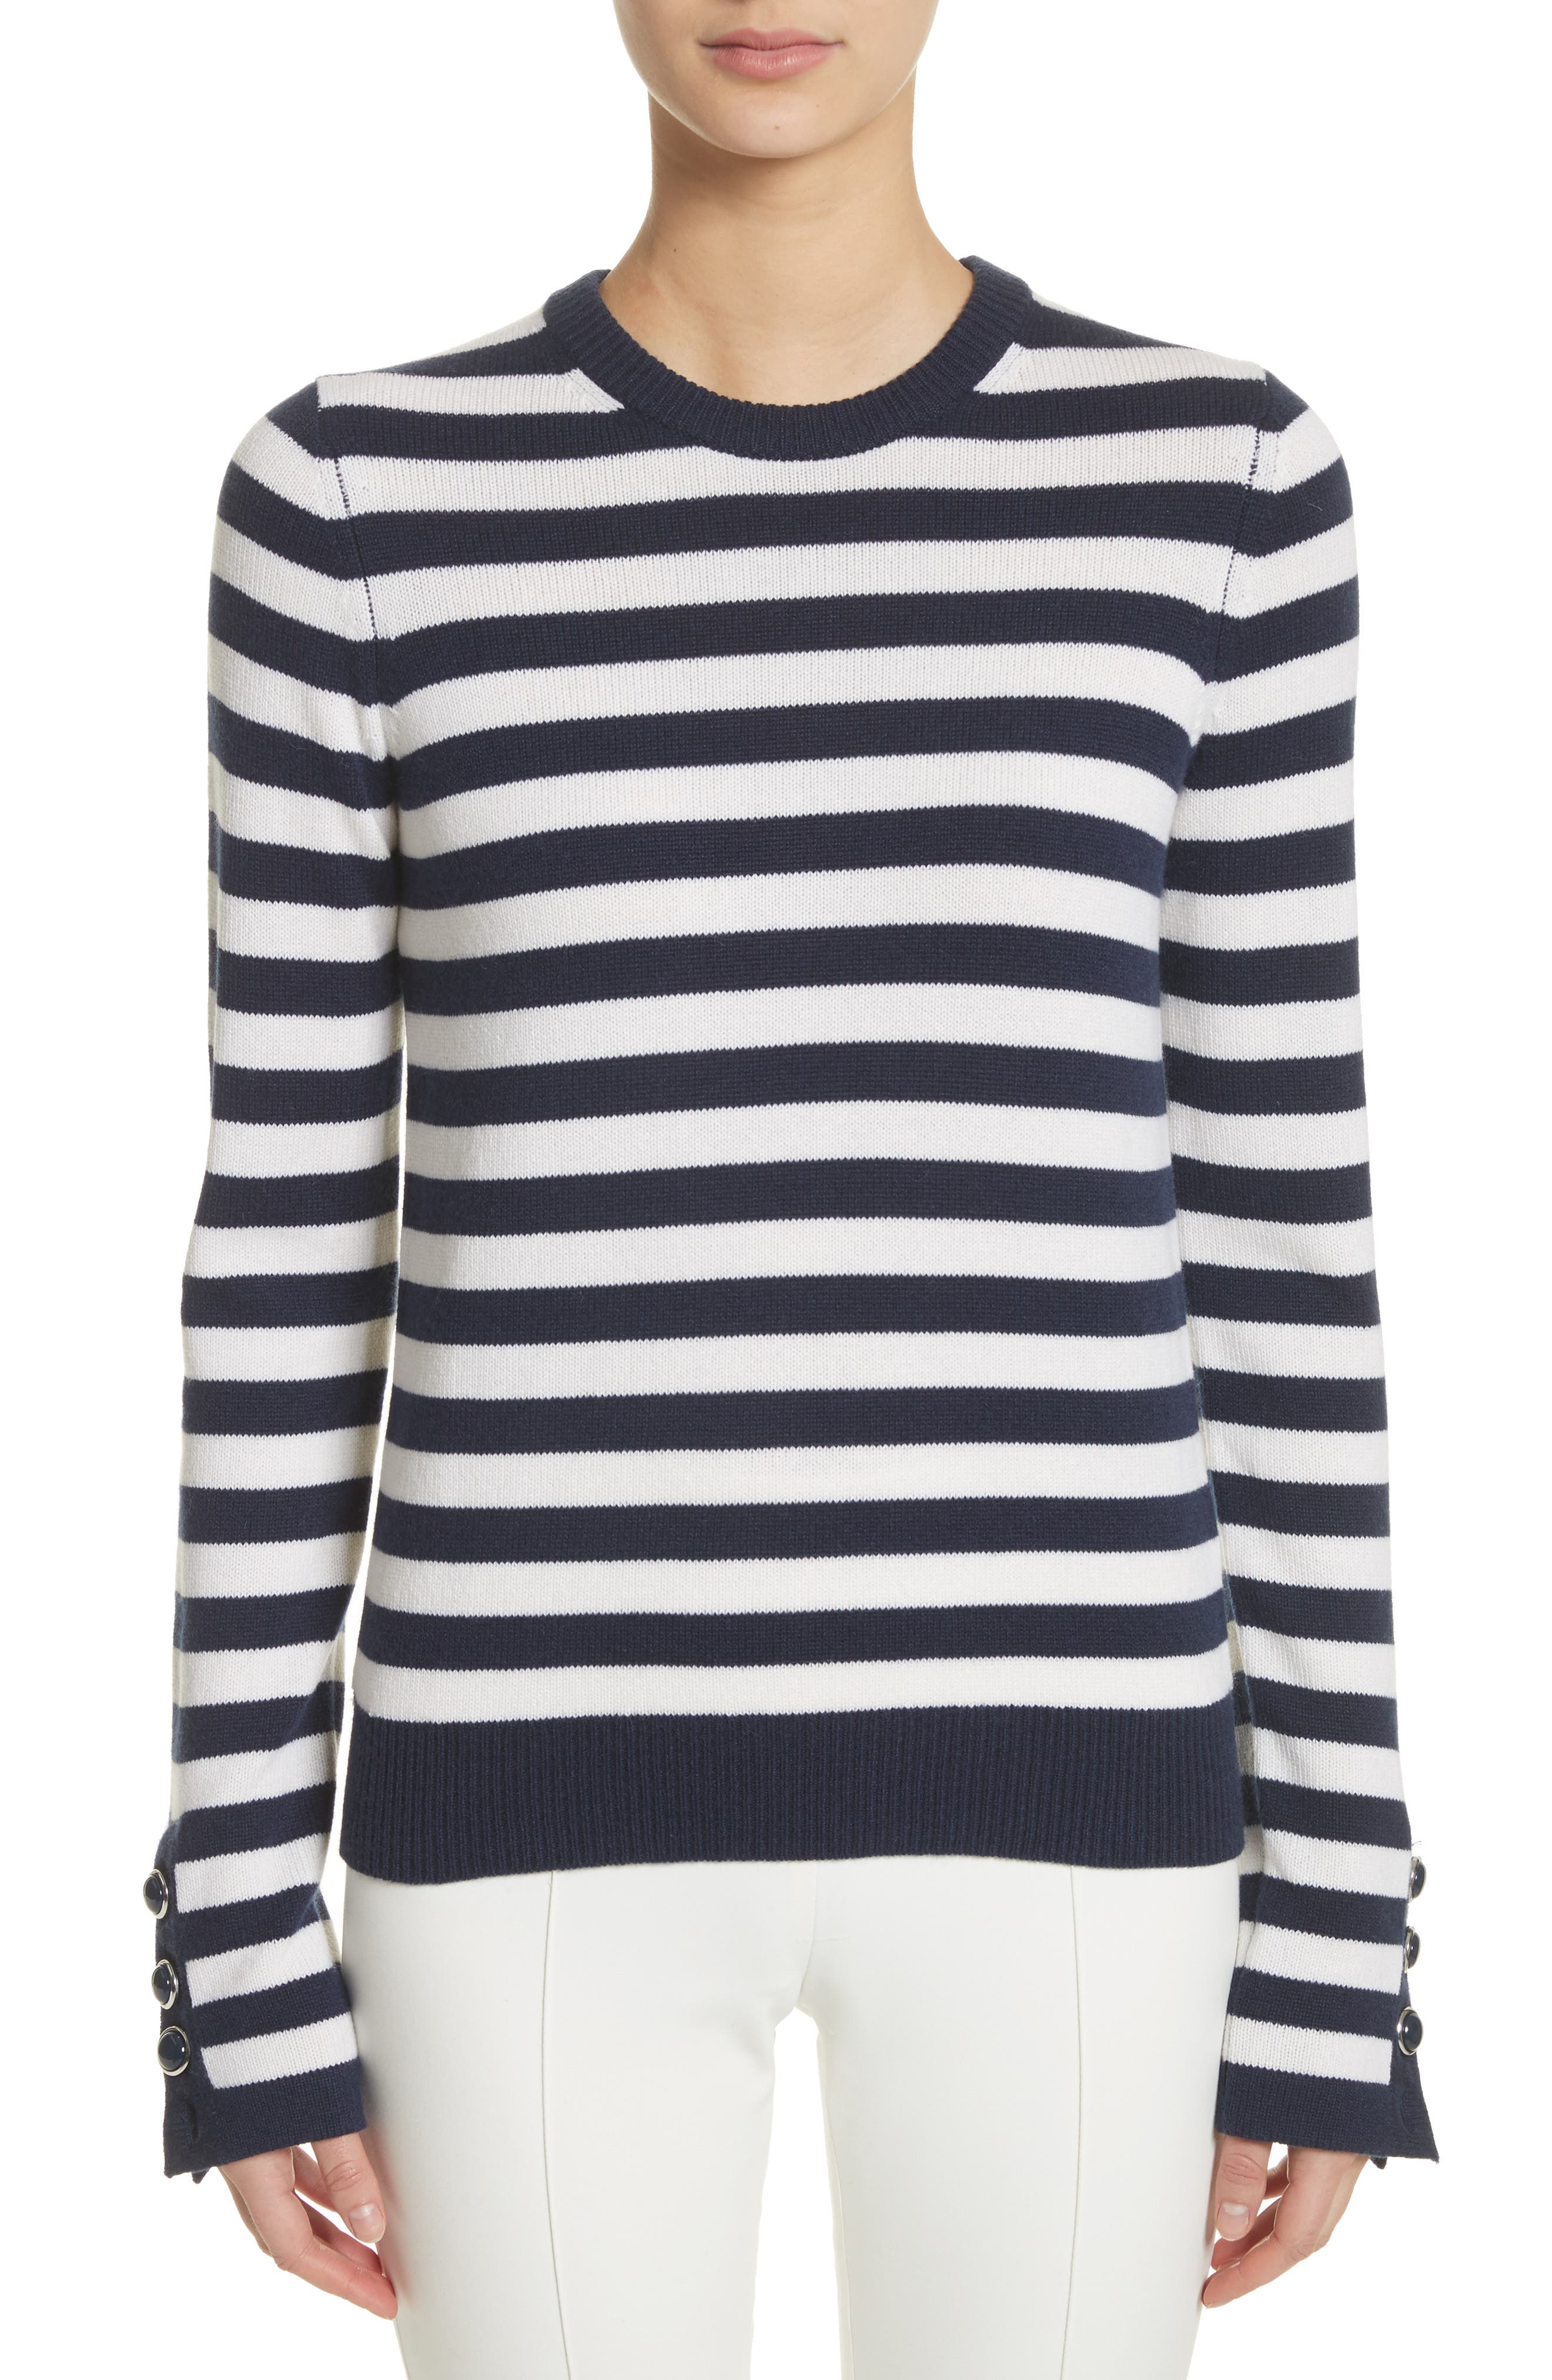 Michael Kors Button Cuff Cashmere Sweater